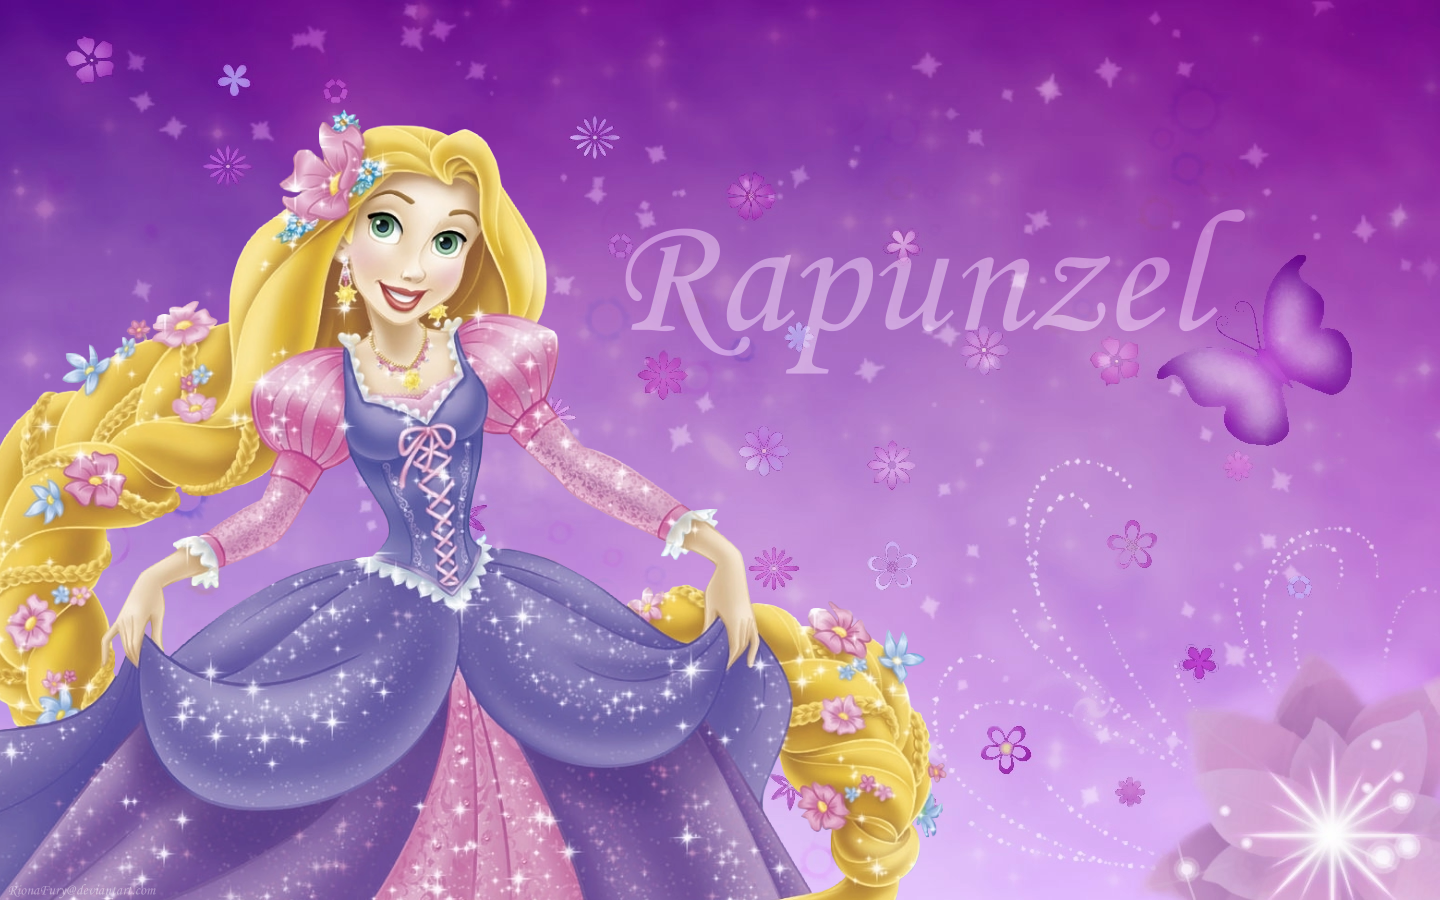 Tangled images Disney Princess Rapunzel HD wallpaper and 1440x900